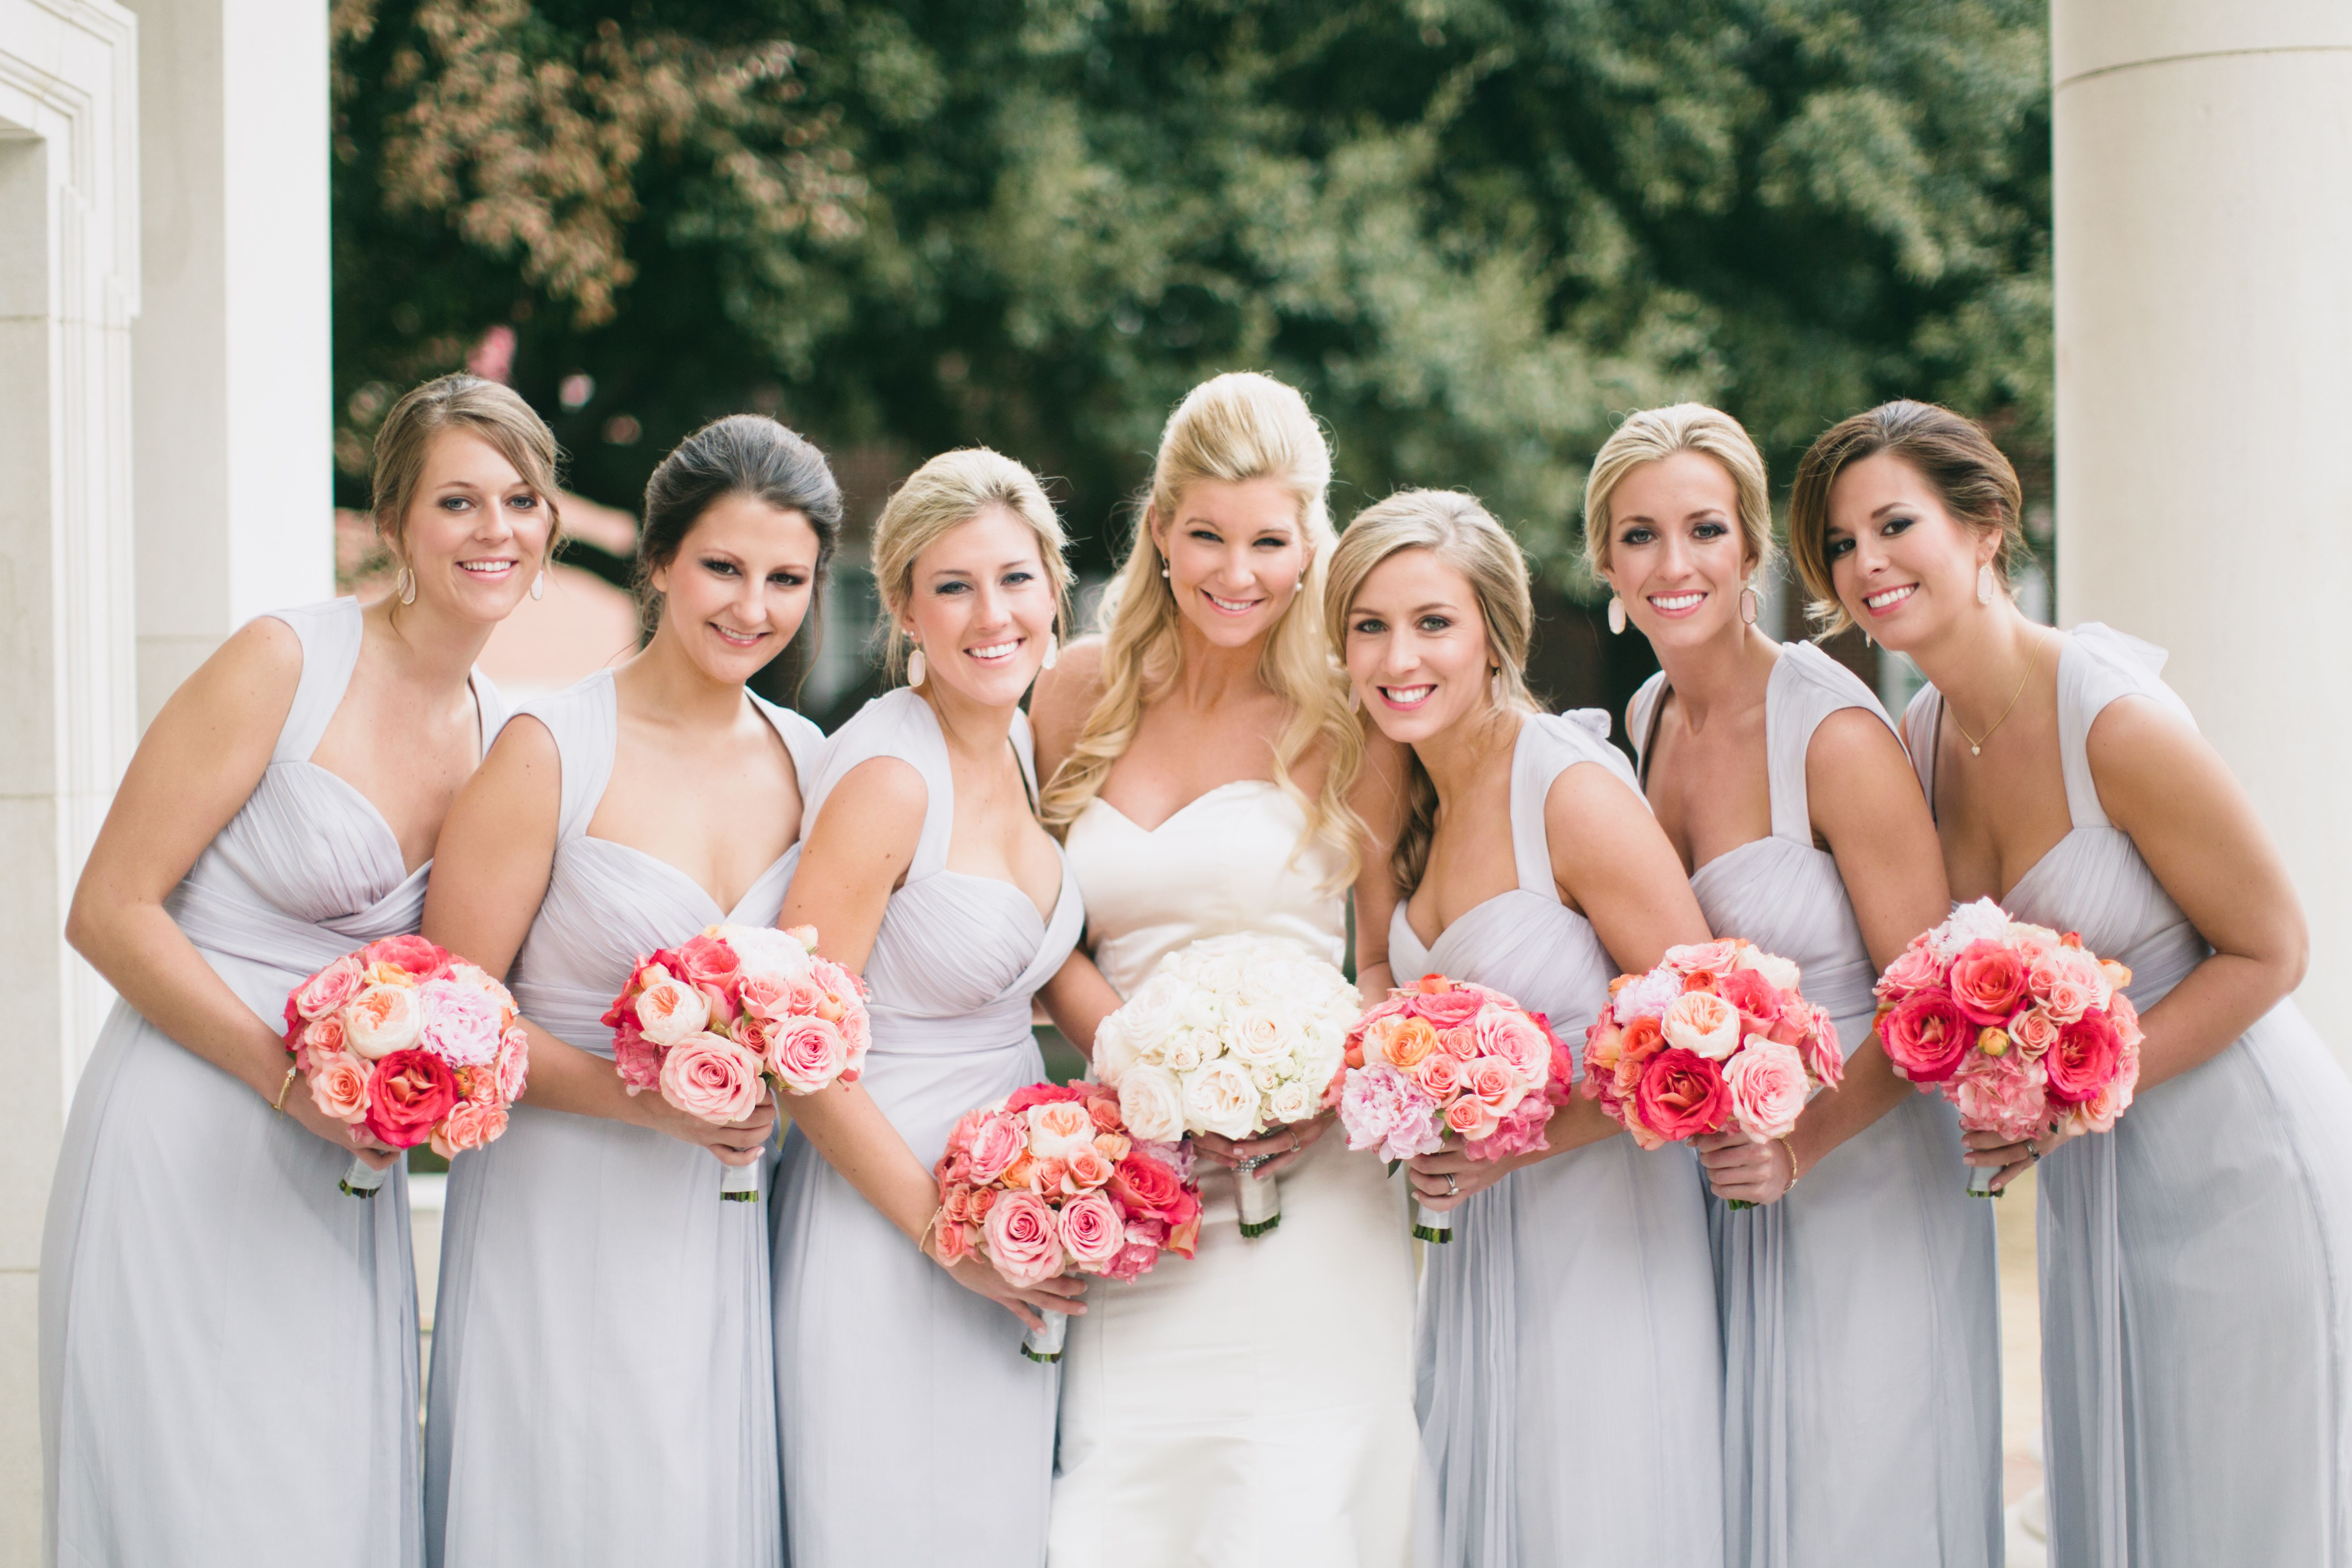 Pops of pink for bridesmaids bouquets branching out floral design